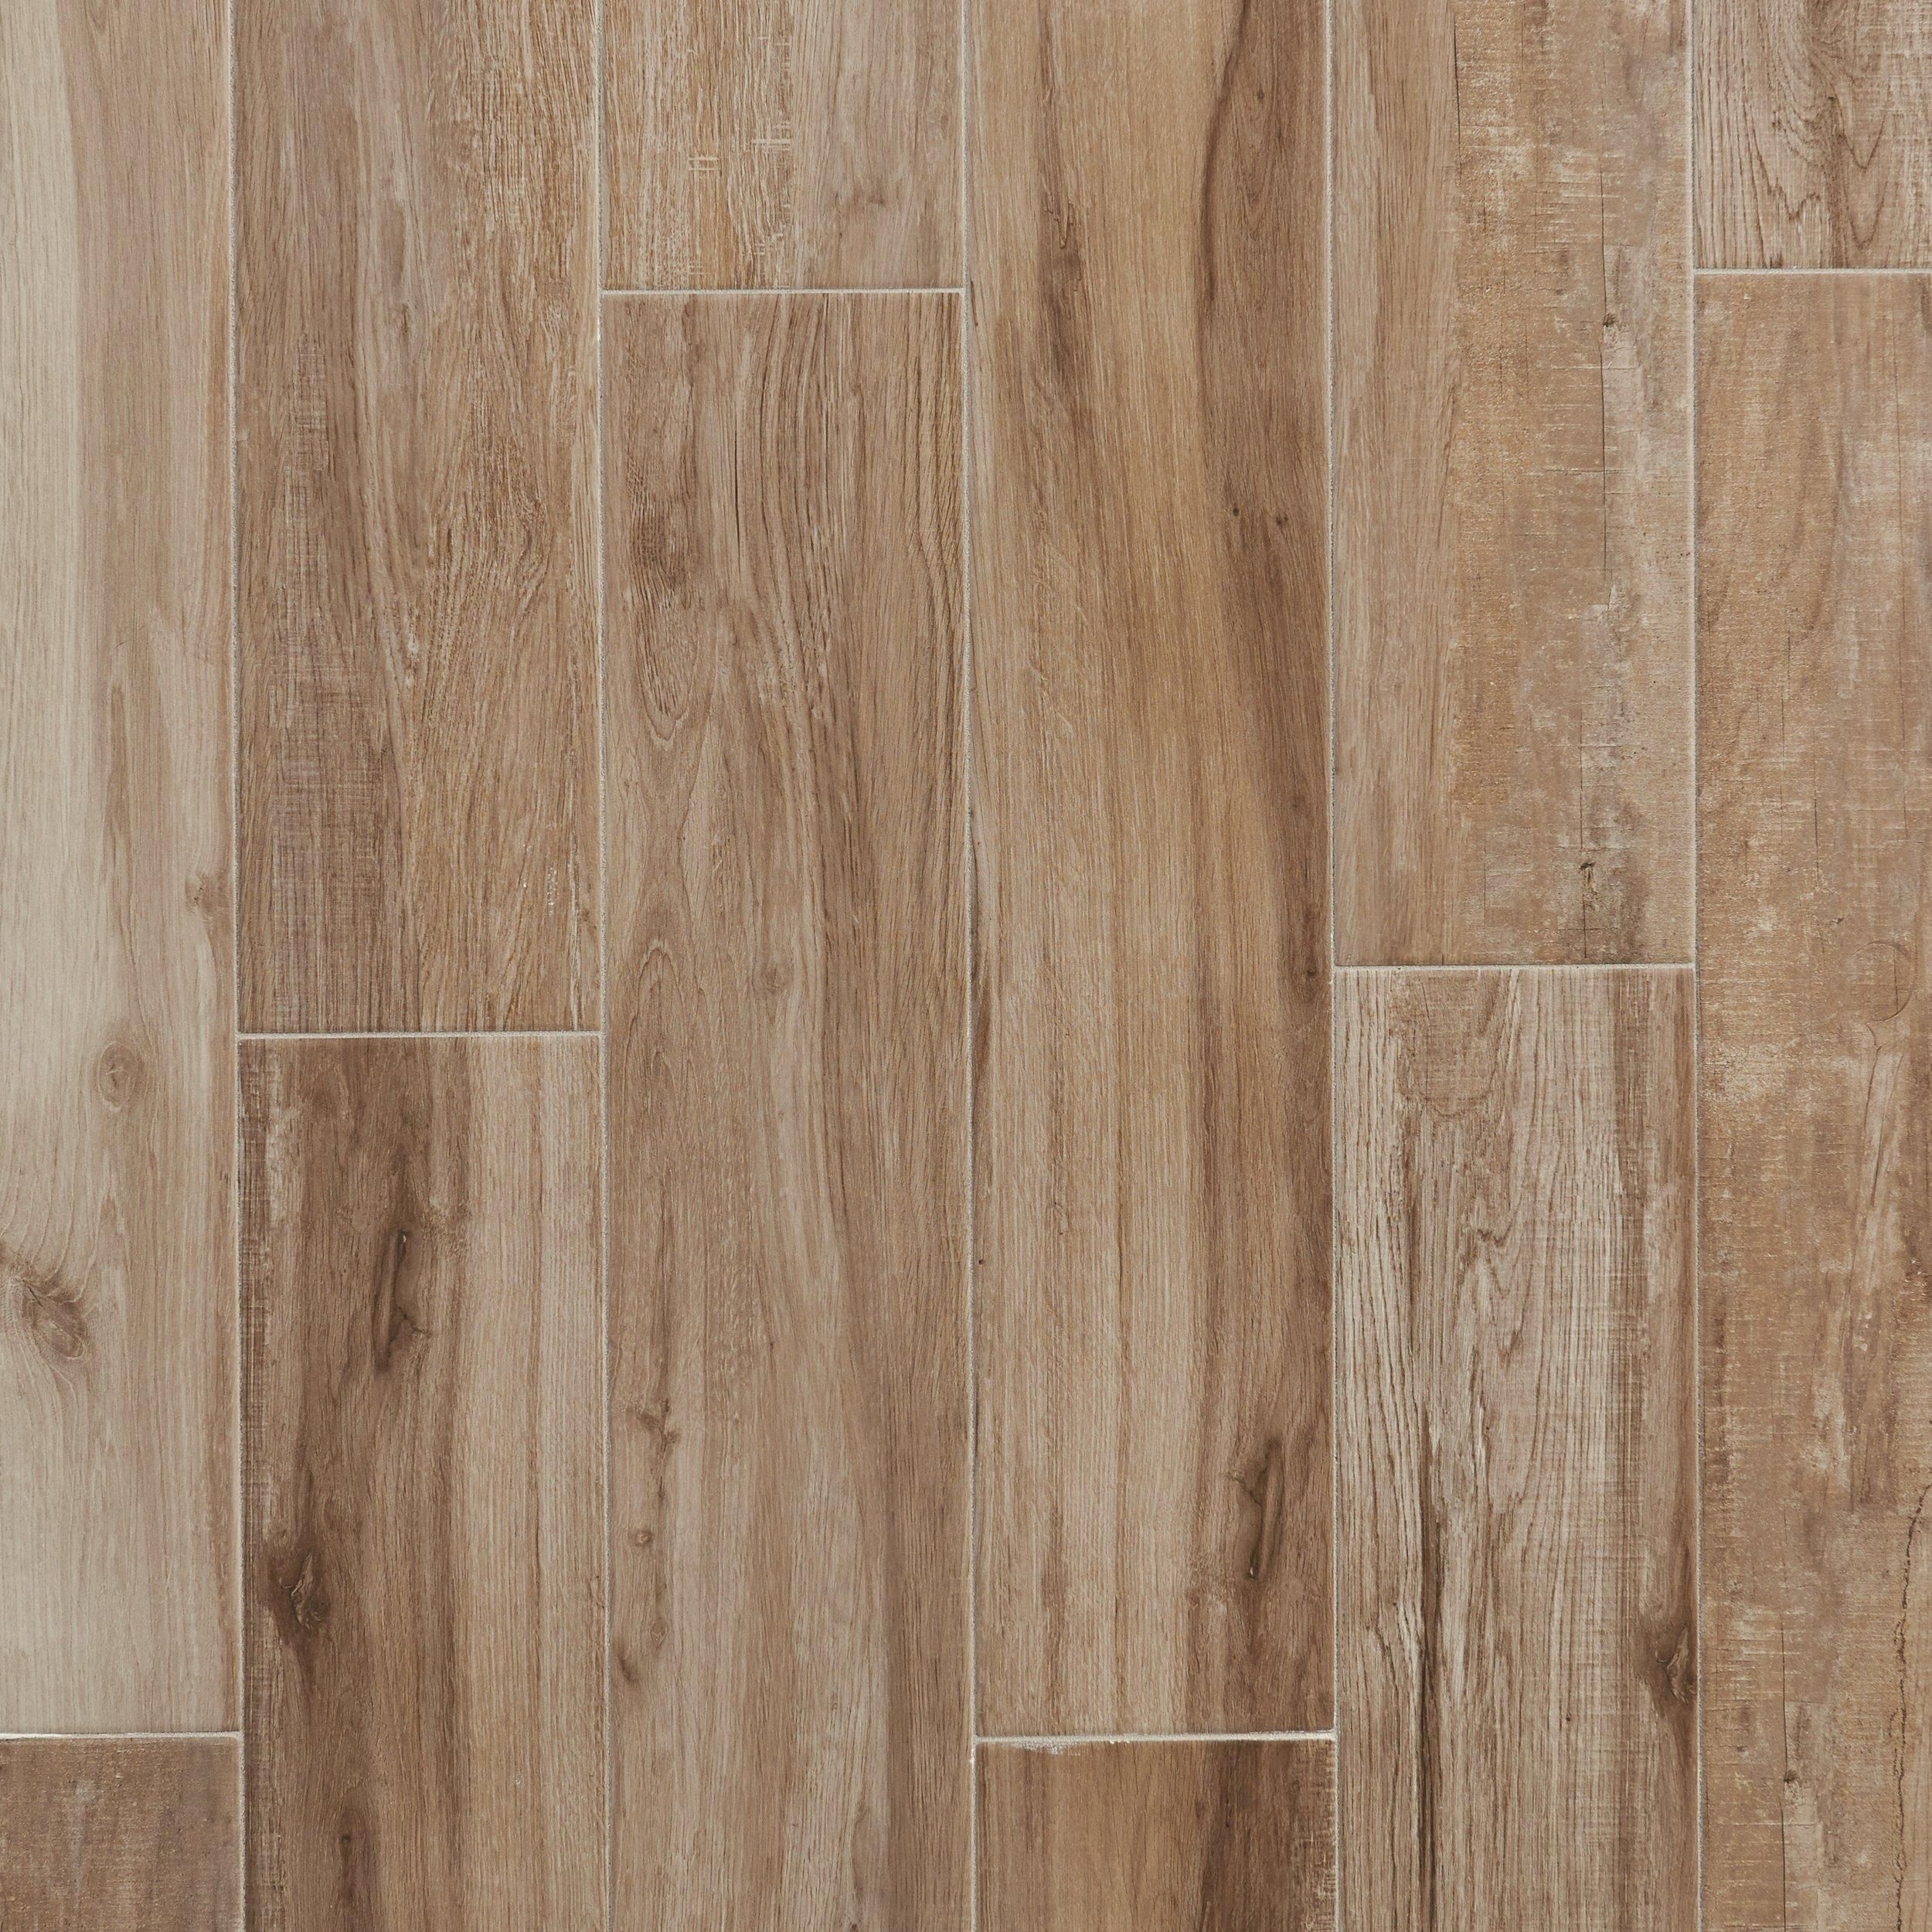 Pthis brown wood look bryce canyon timber wood plank ceramic tile pthis brown wood look bryce canyon timber wood plank ceramic tile is 6in dailygadgetfo Image collections